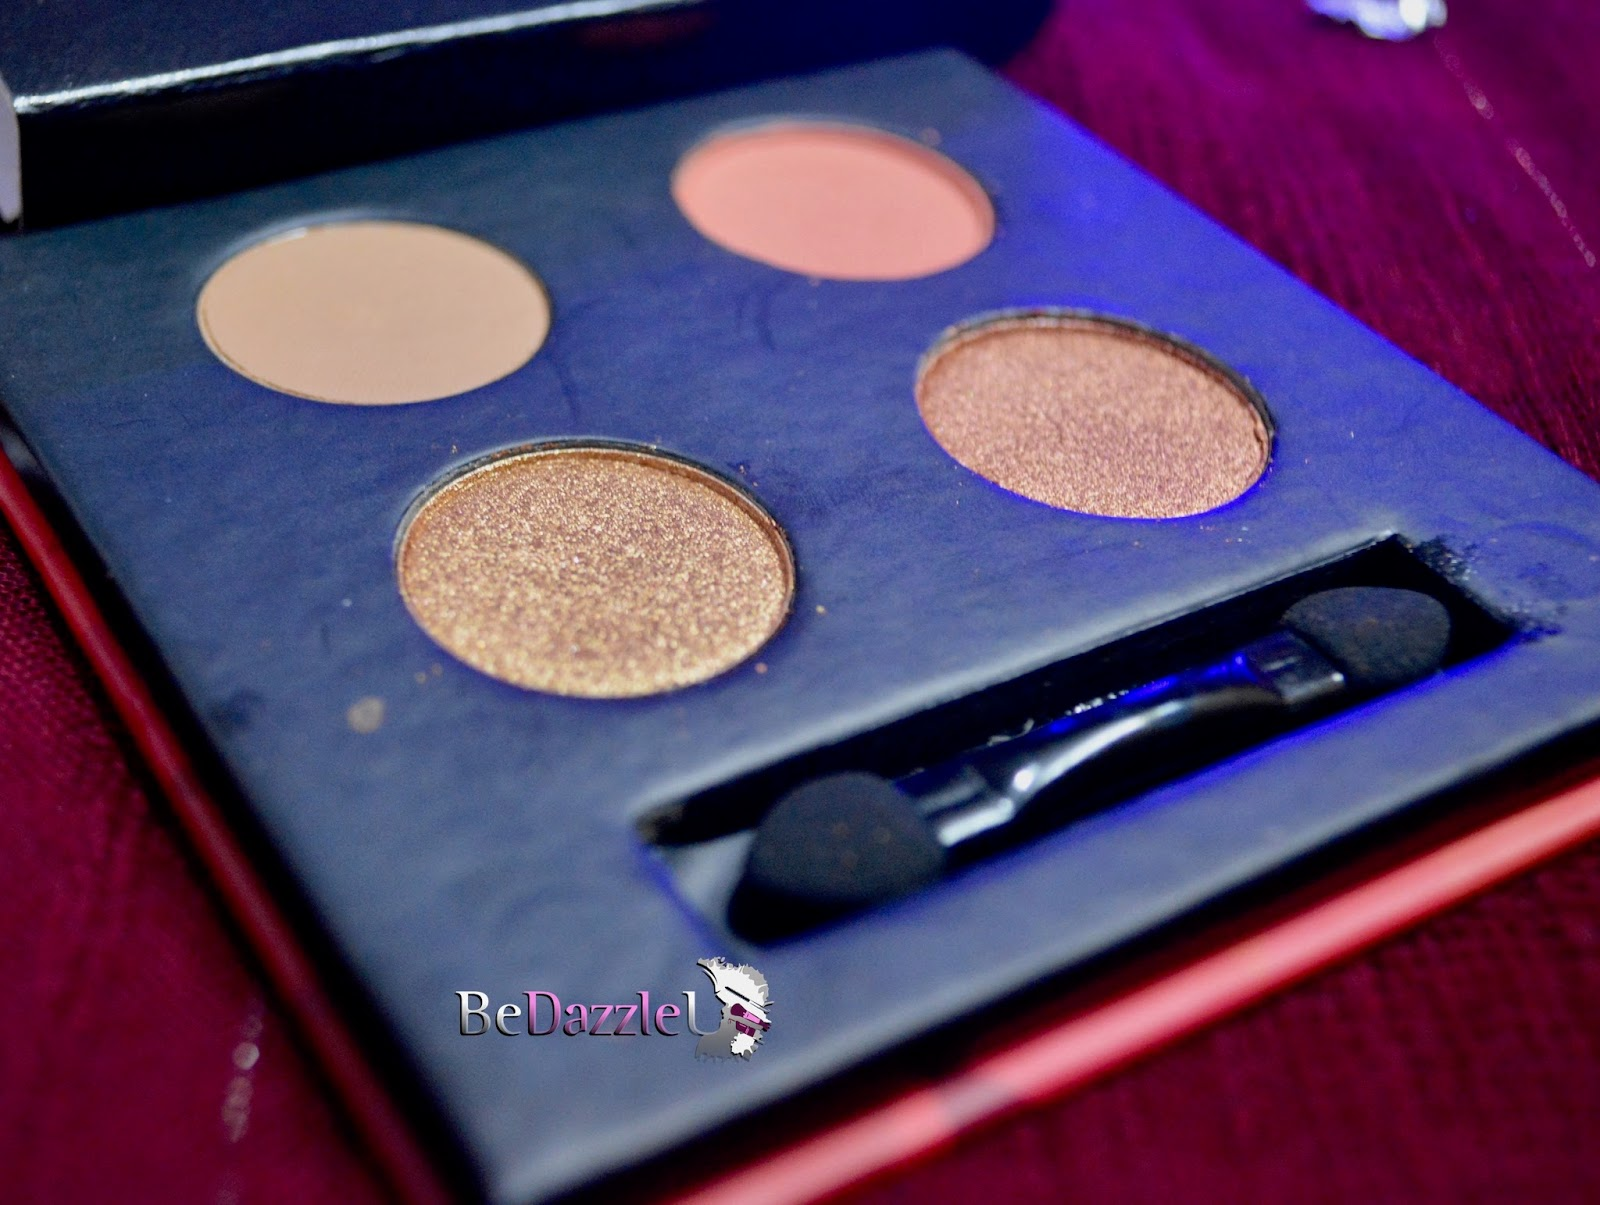 Blend the rules eyeshadow quad